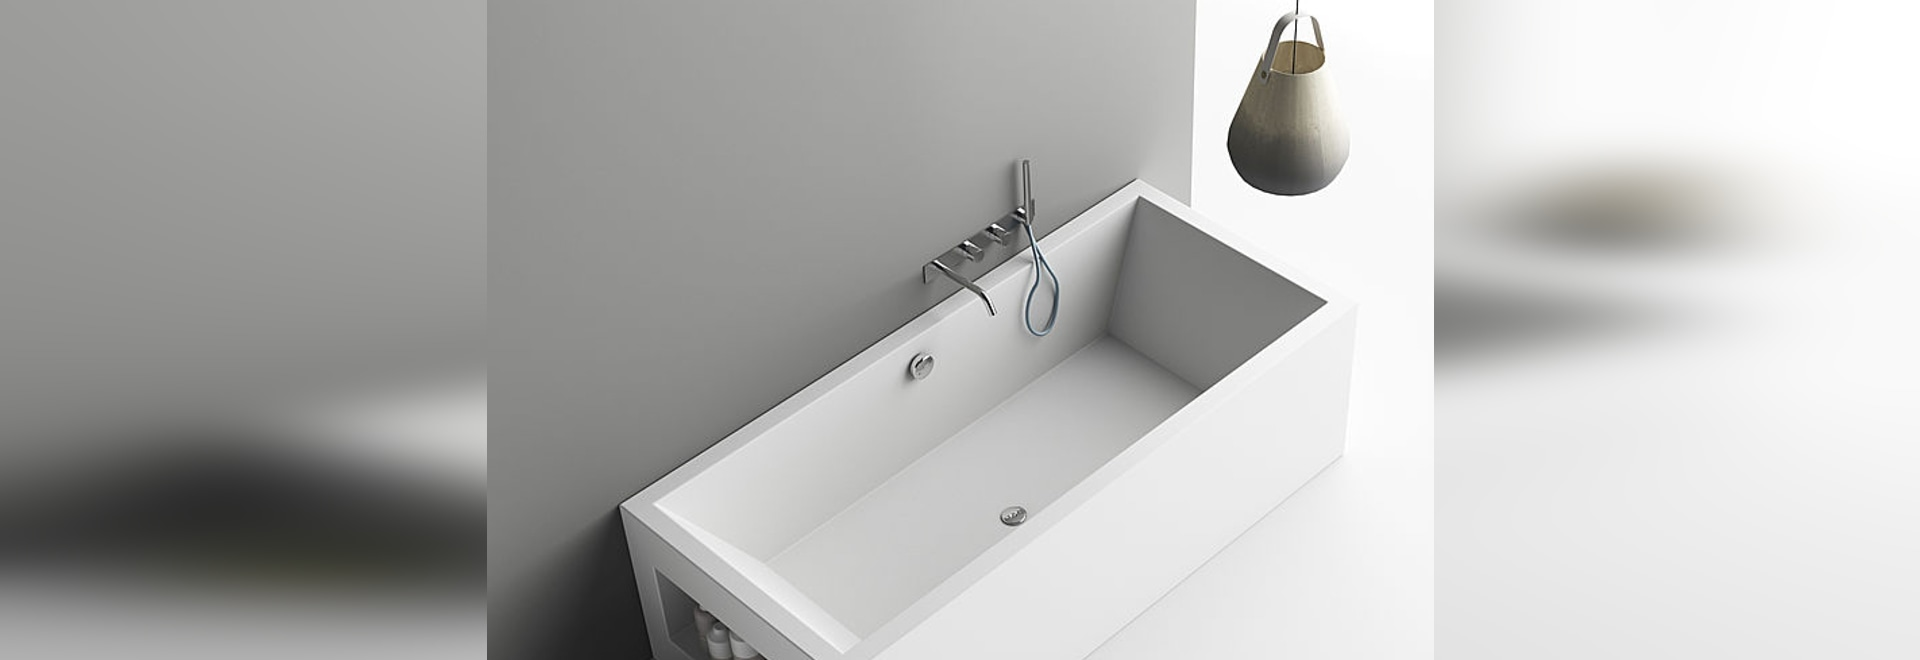 PLANIT presents Aquarius, the bathtub in Corian(R) taylor-made.